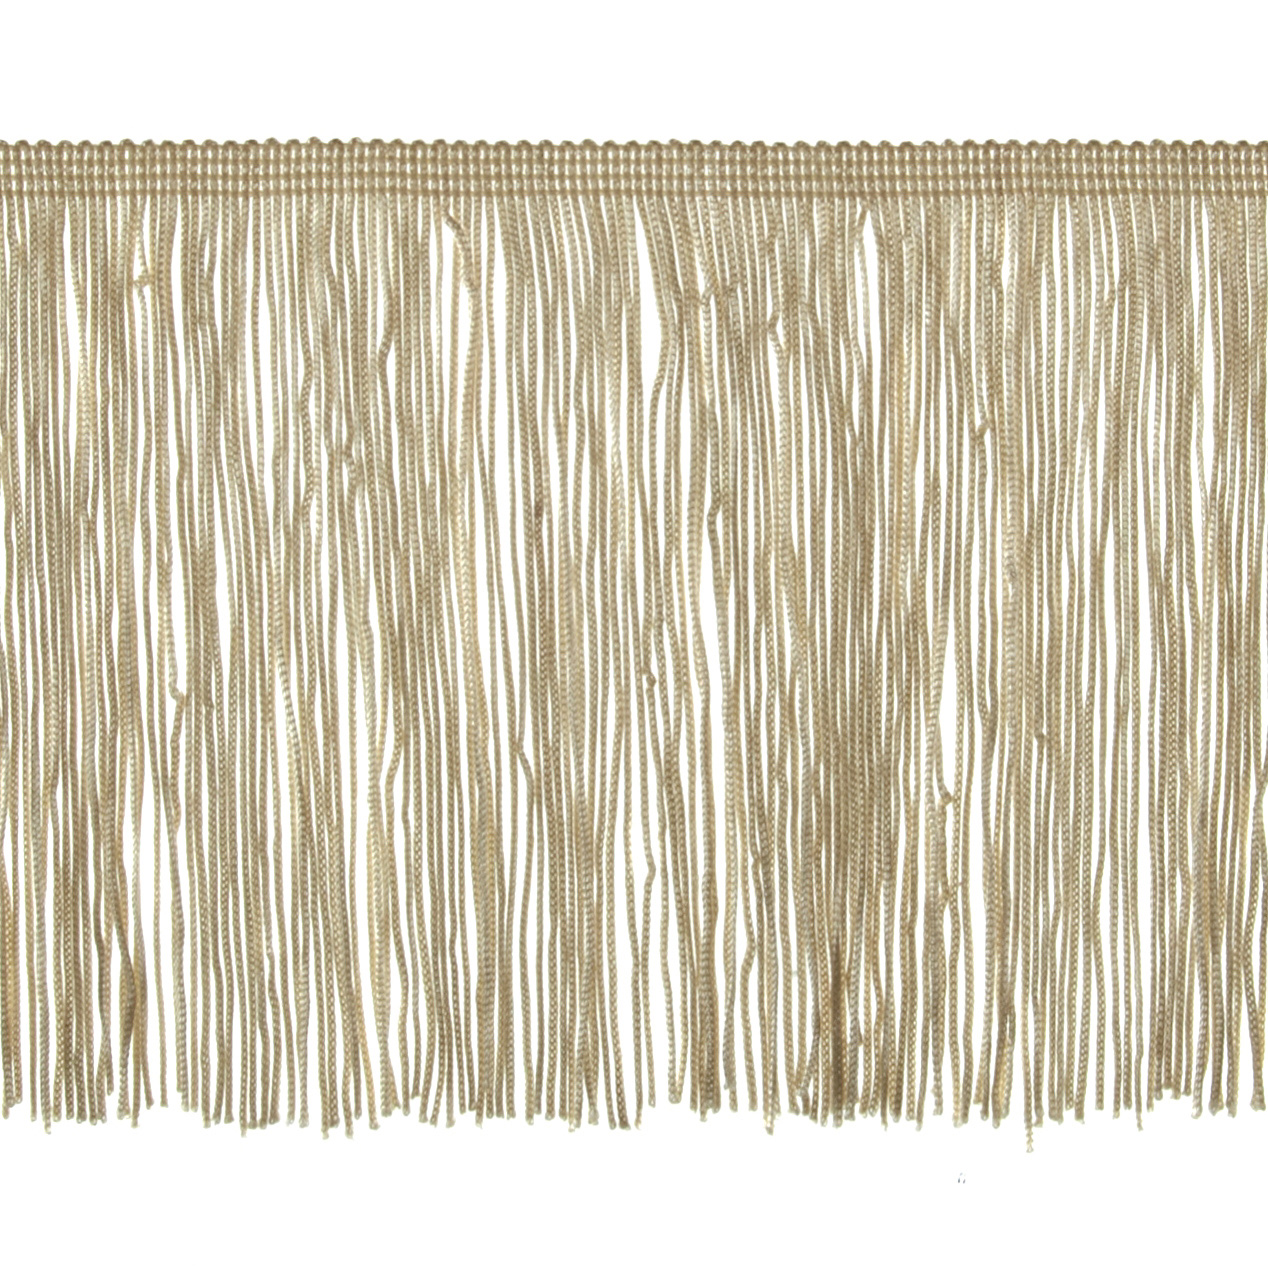 6'' Chainette Fringe Trim Ivory Fabric